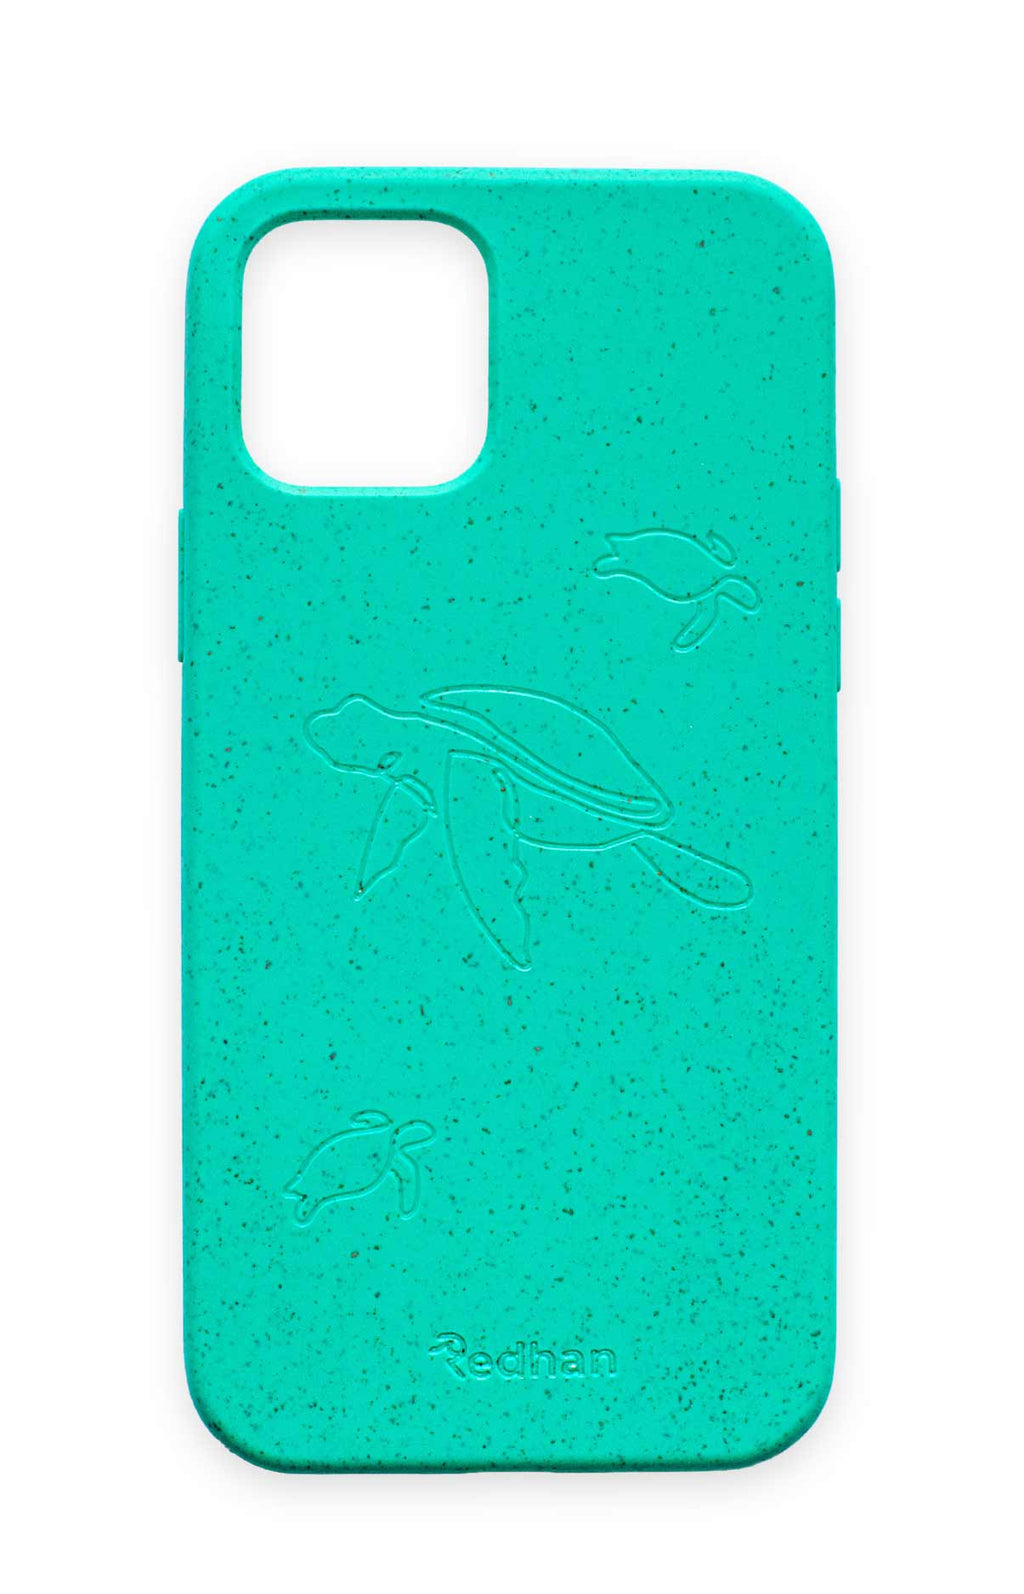 Eco Friendly iPhone 12 Mini Phone Case - Turtle in Turquoise